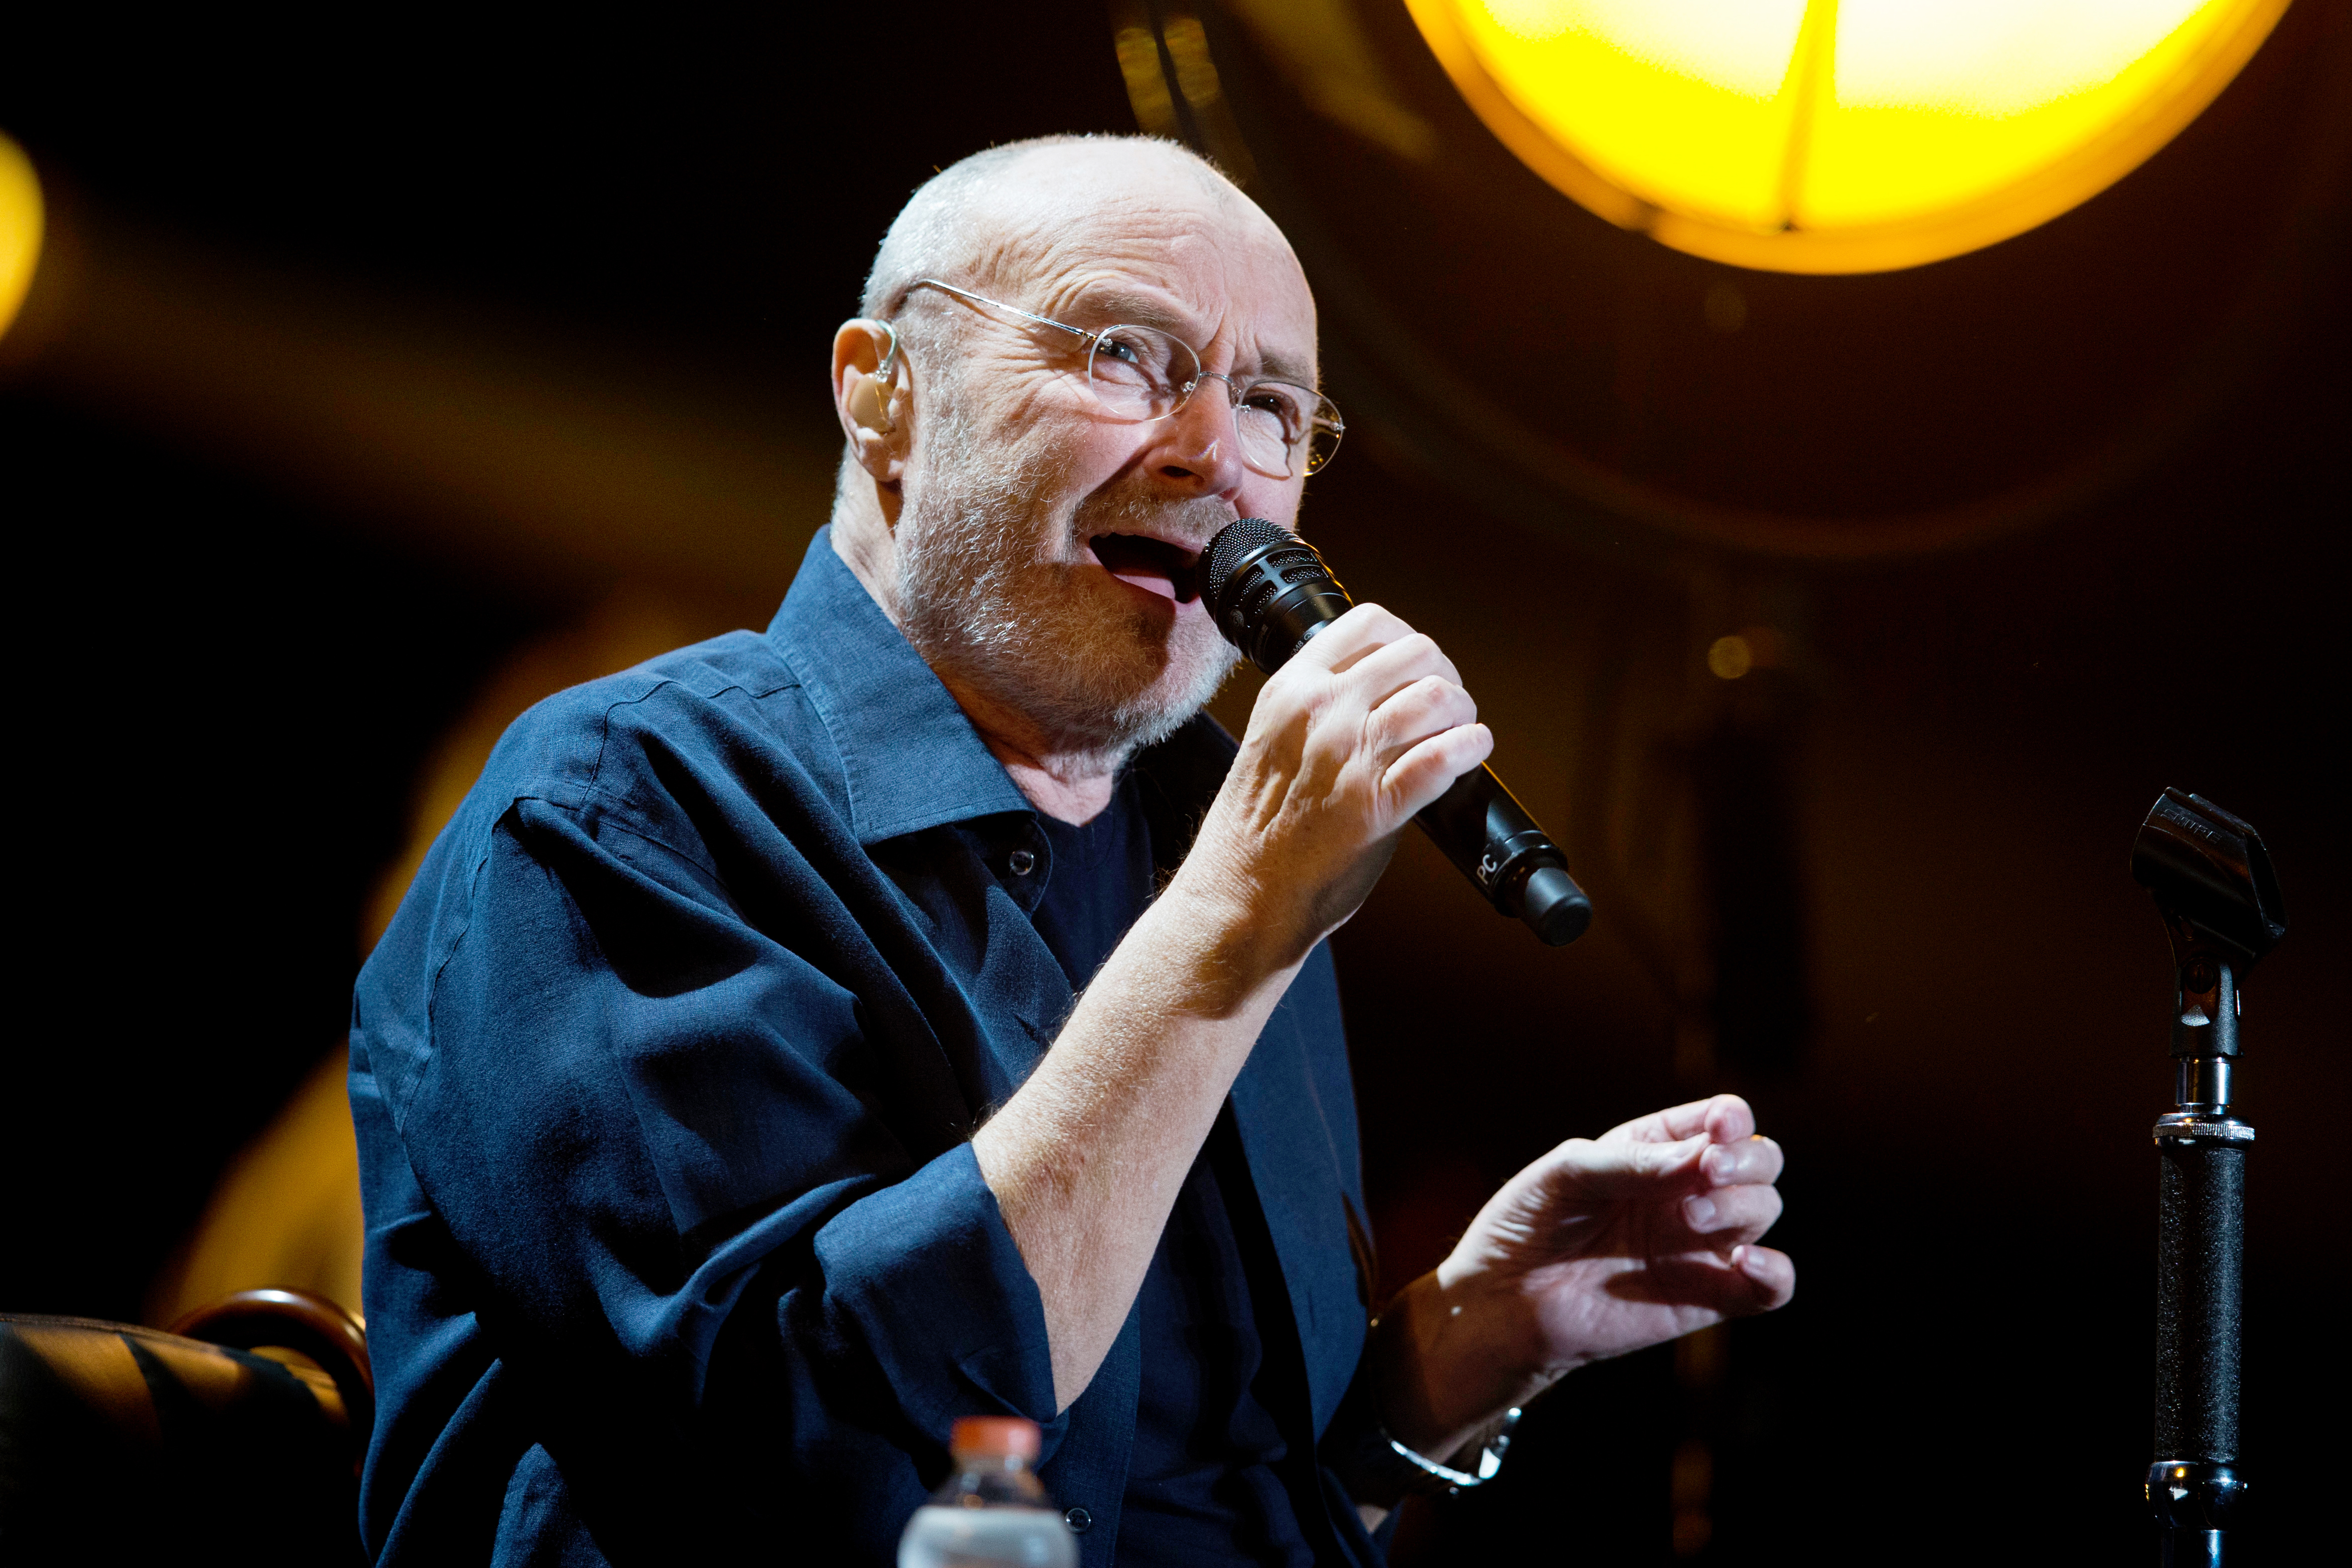 Genesis reunion now no longer just to annoy europeans nude (69 photo)